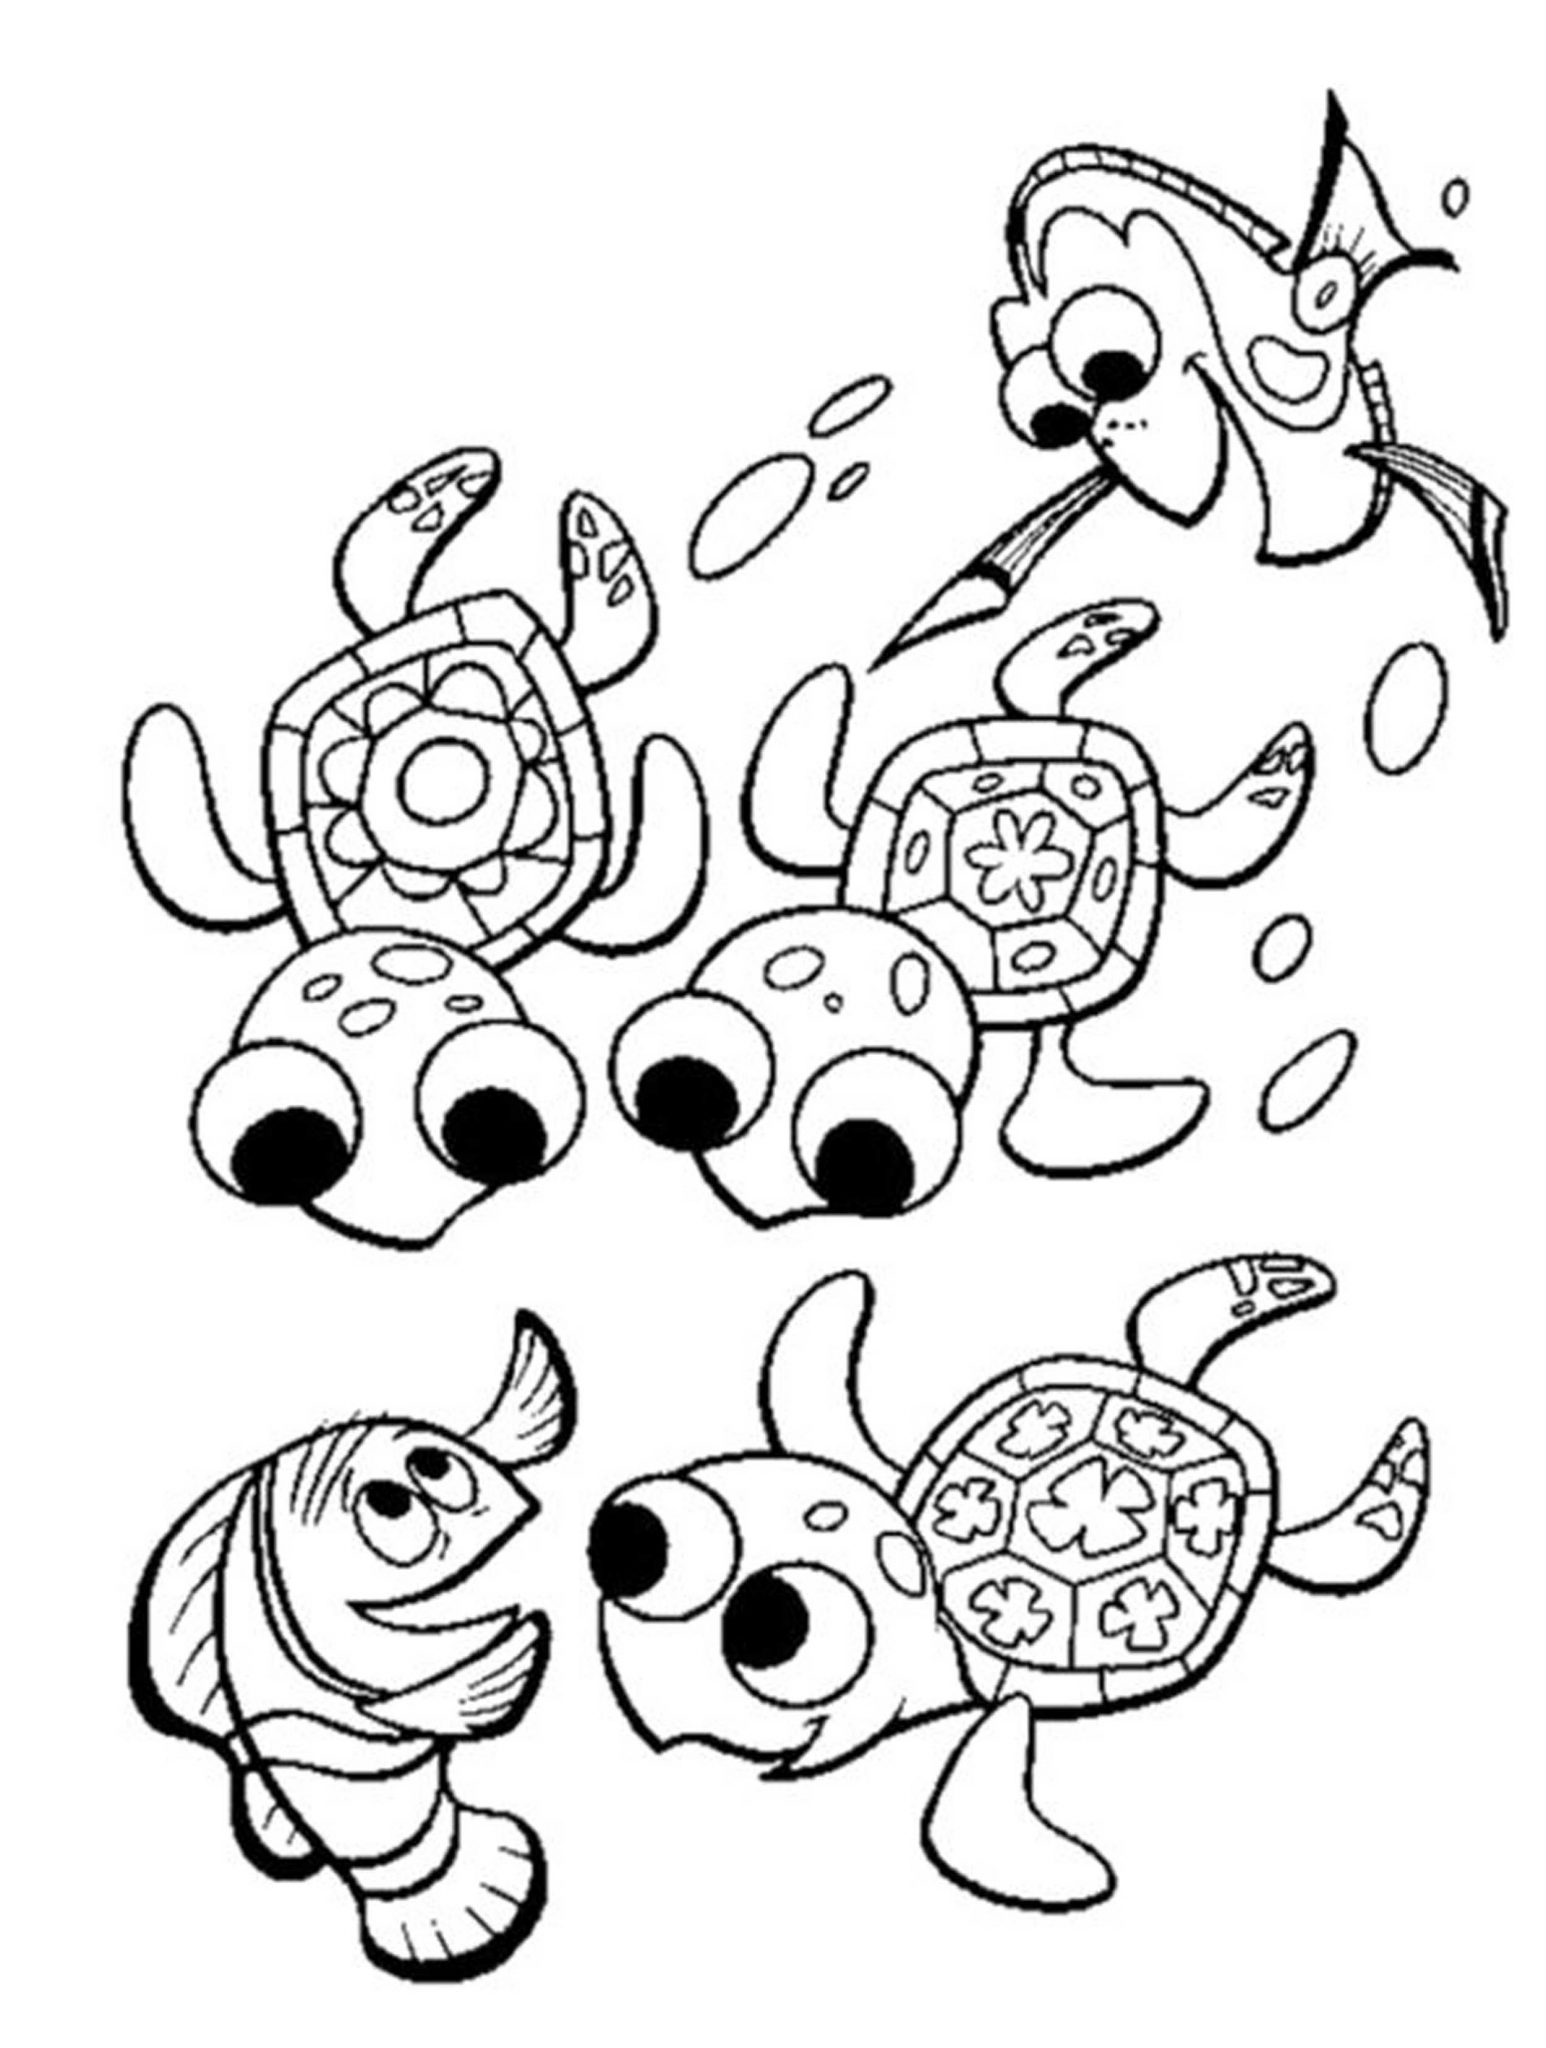 turtle coloring book page free turtle coloring pages for adults printable to coloring page book turtle